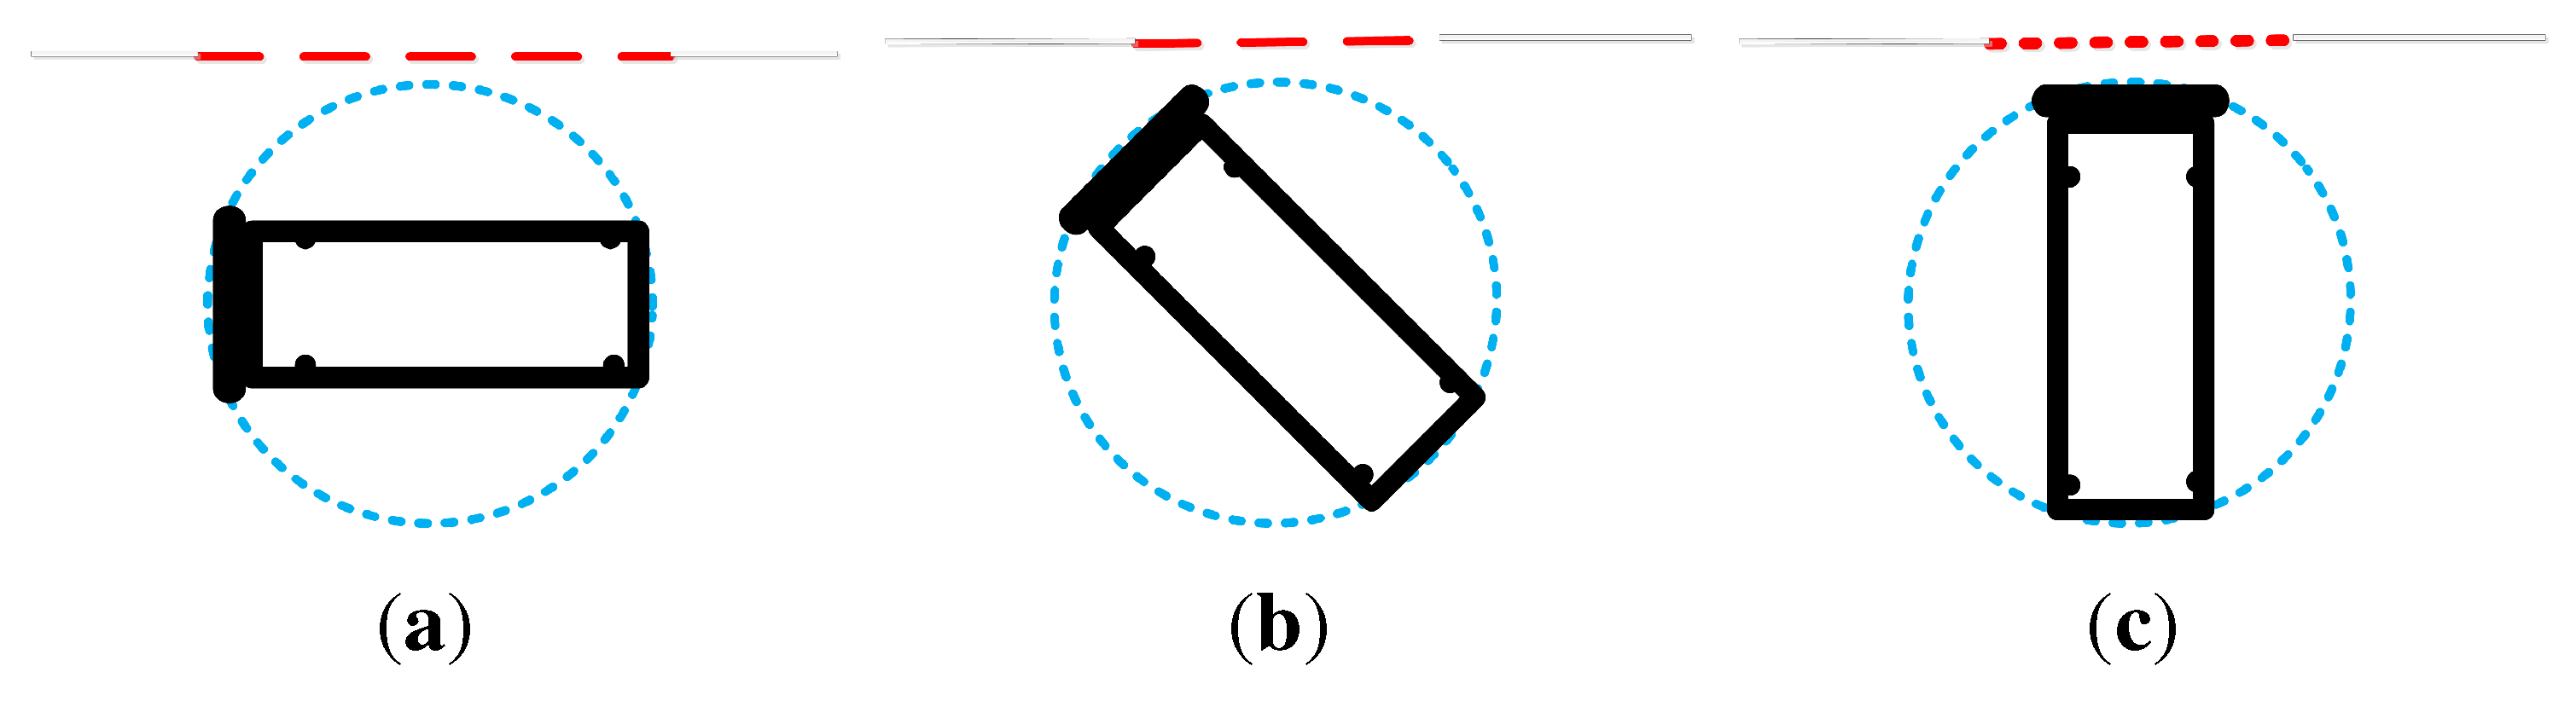 IJGI | Free Full-Text | An Approach for Indoor Path